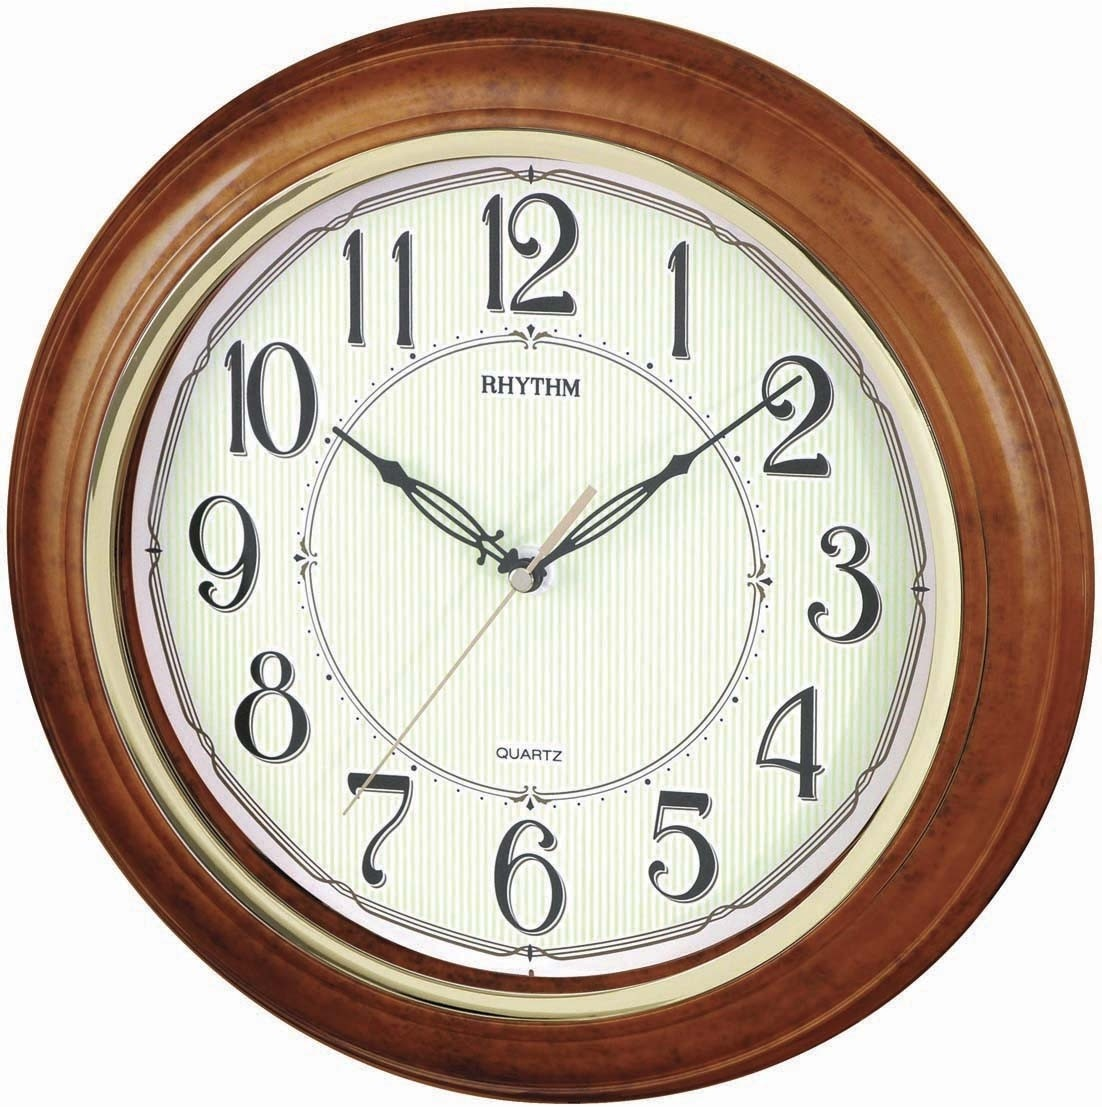 Rhythm Cmg425br06 Analog 32 Cm Dia Wall Clock Price In